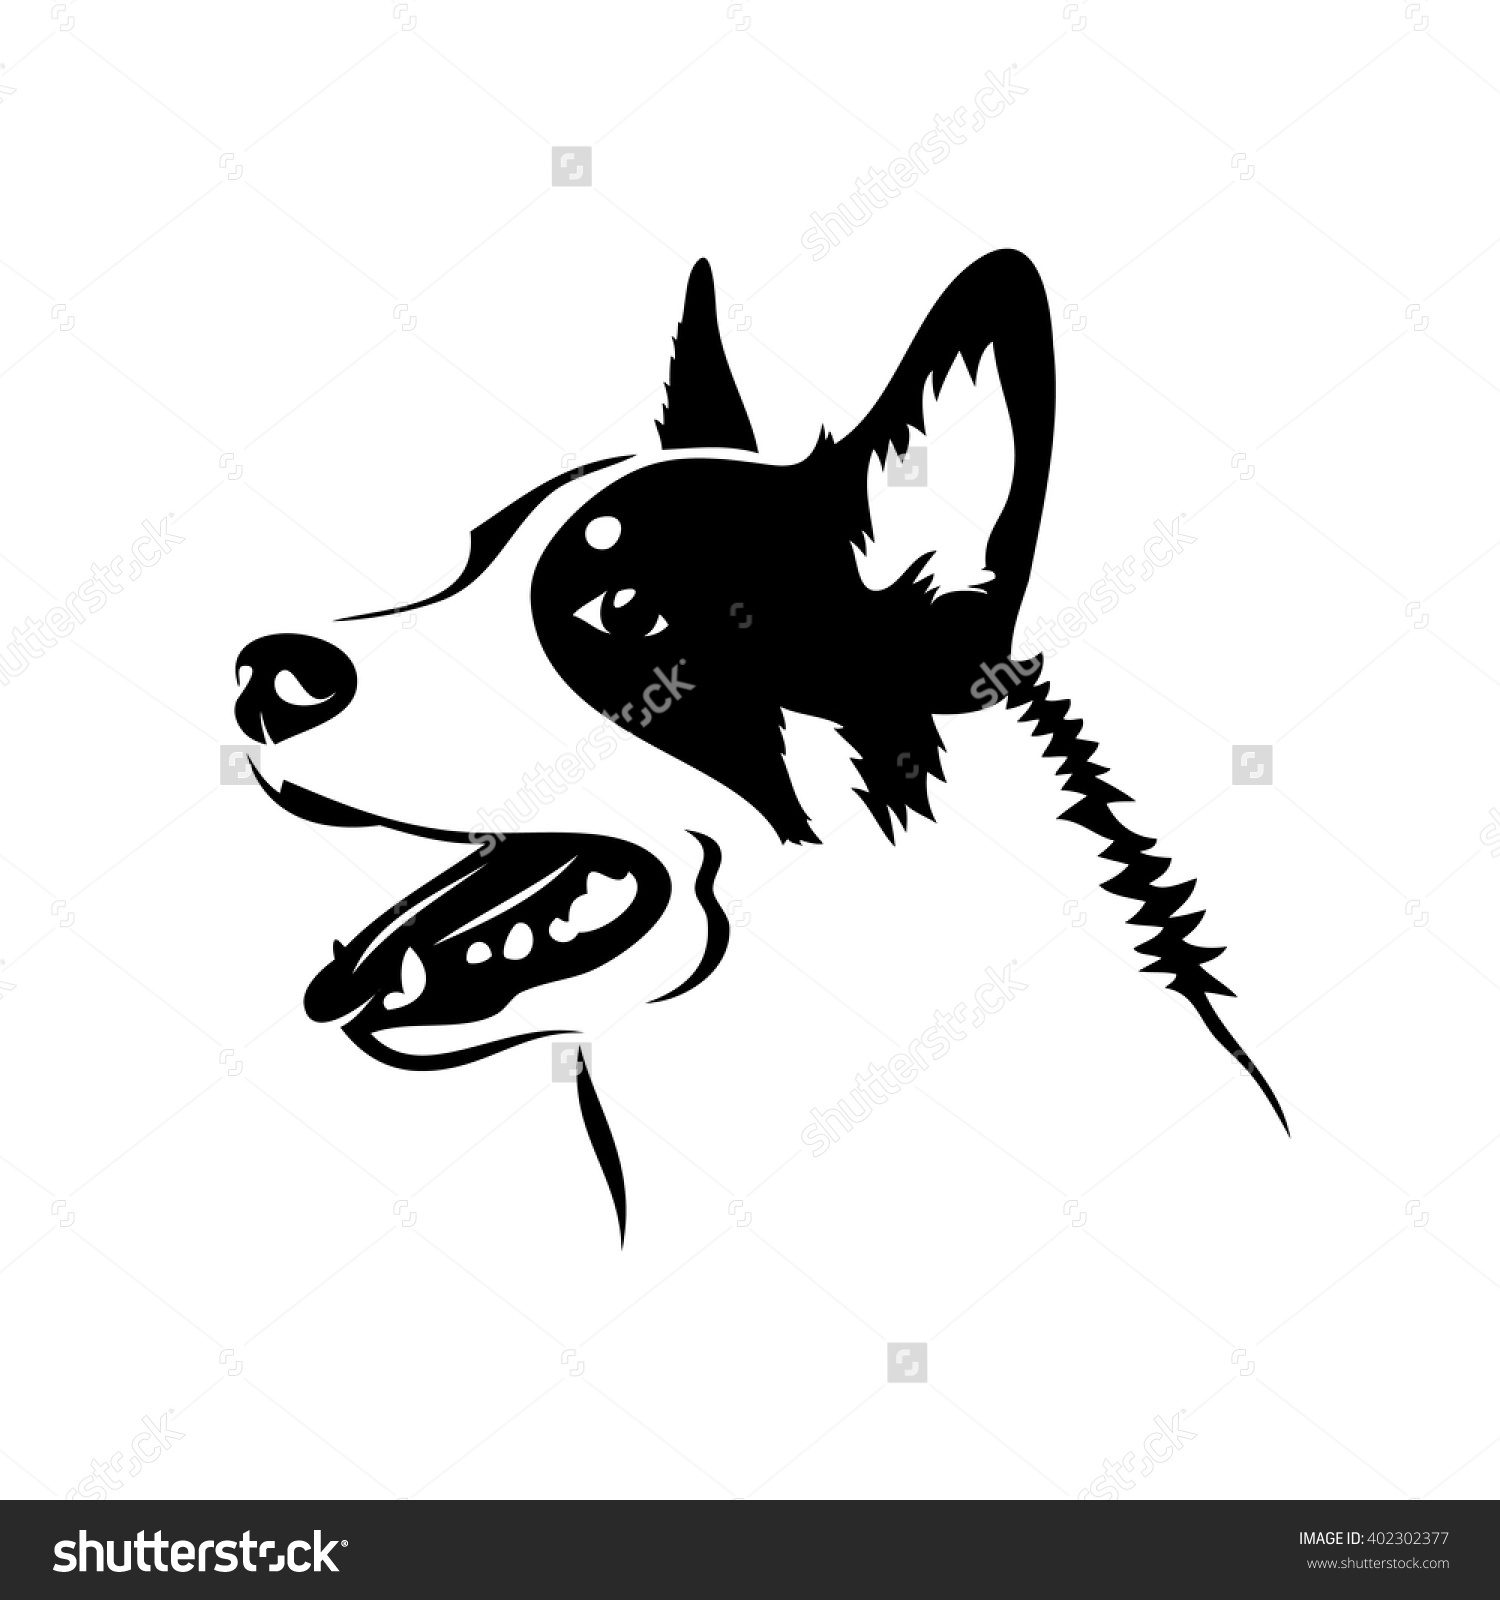 Australian Cattle Dog clipart #7, Download drawings